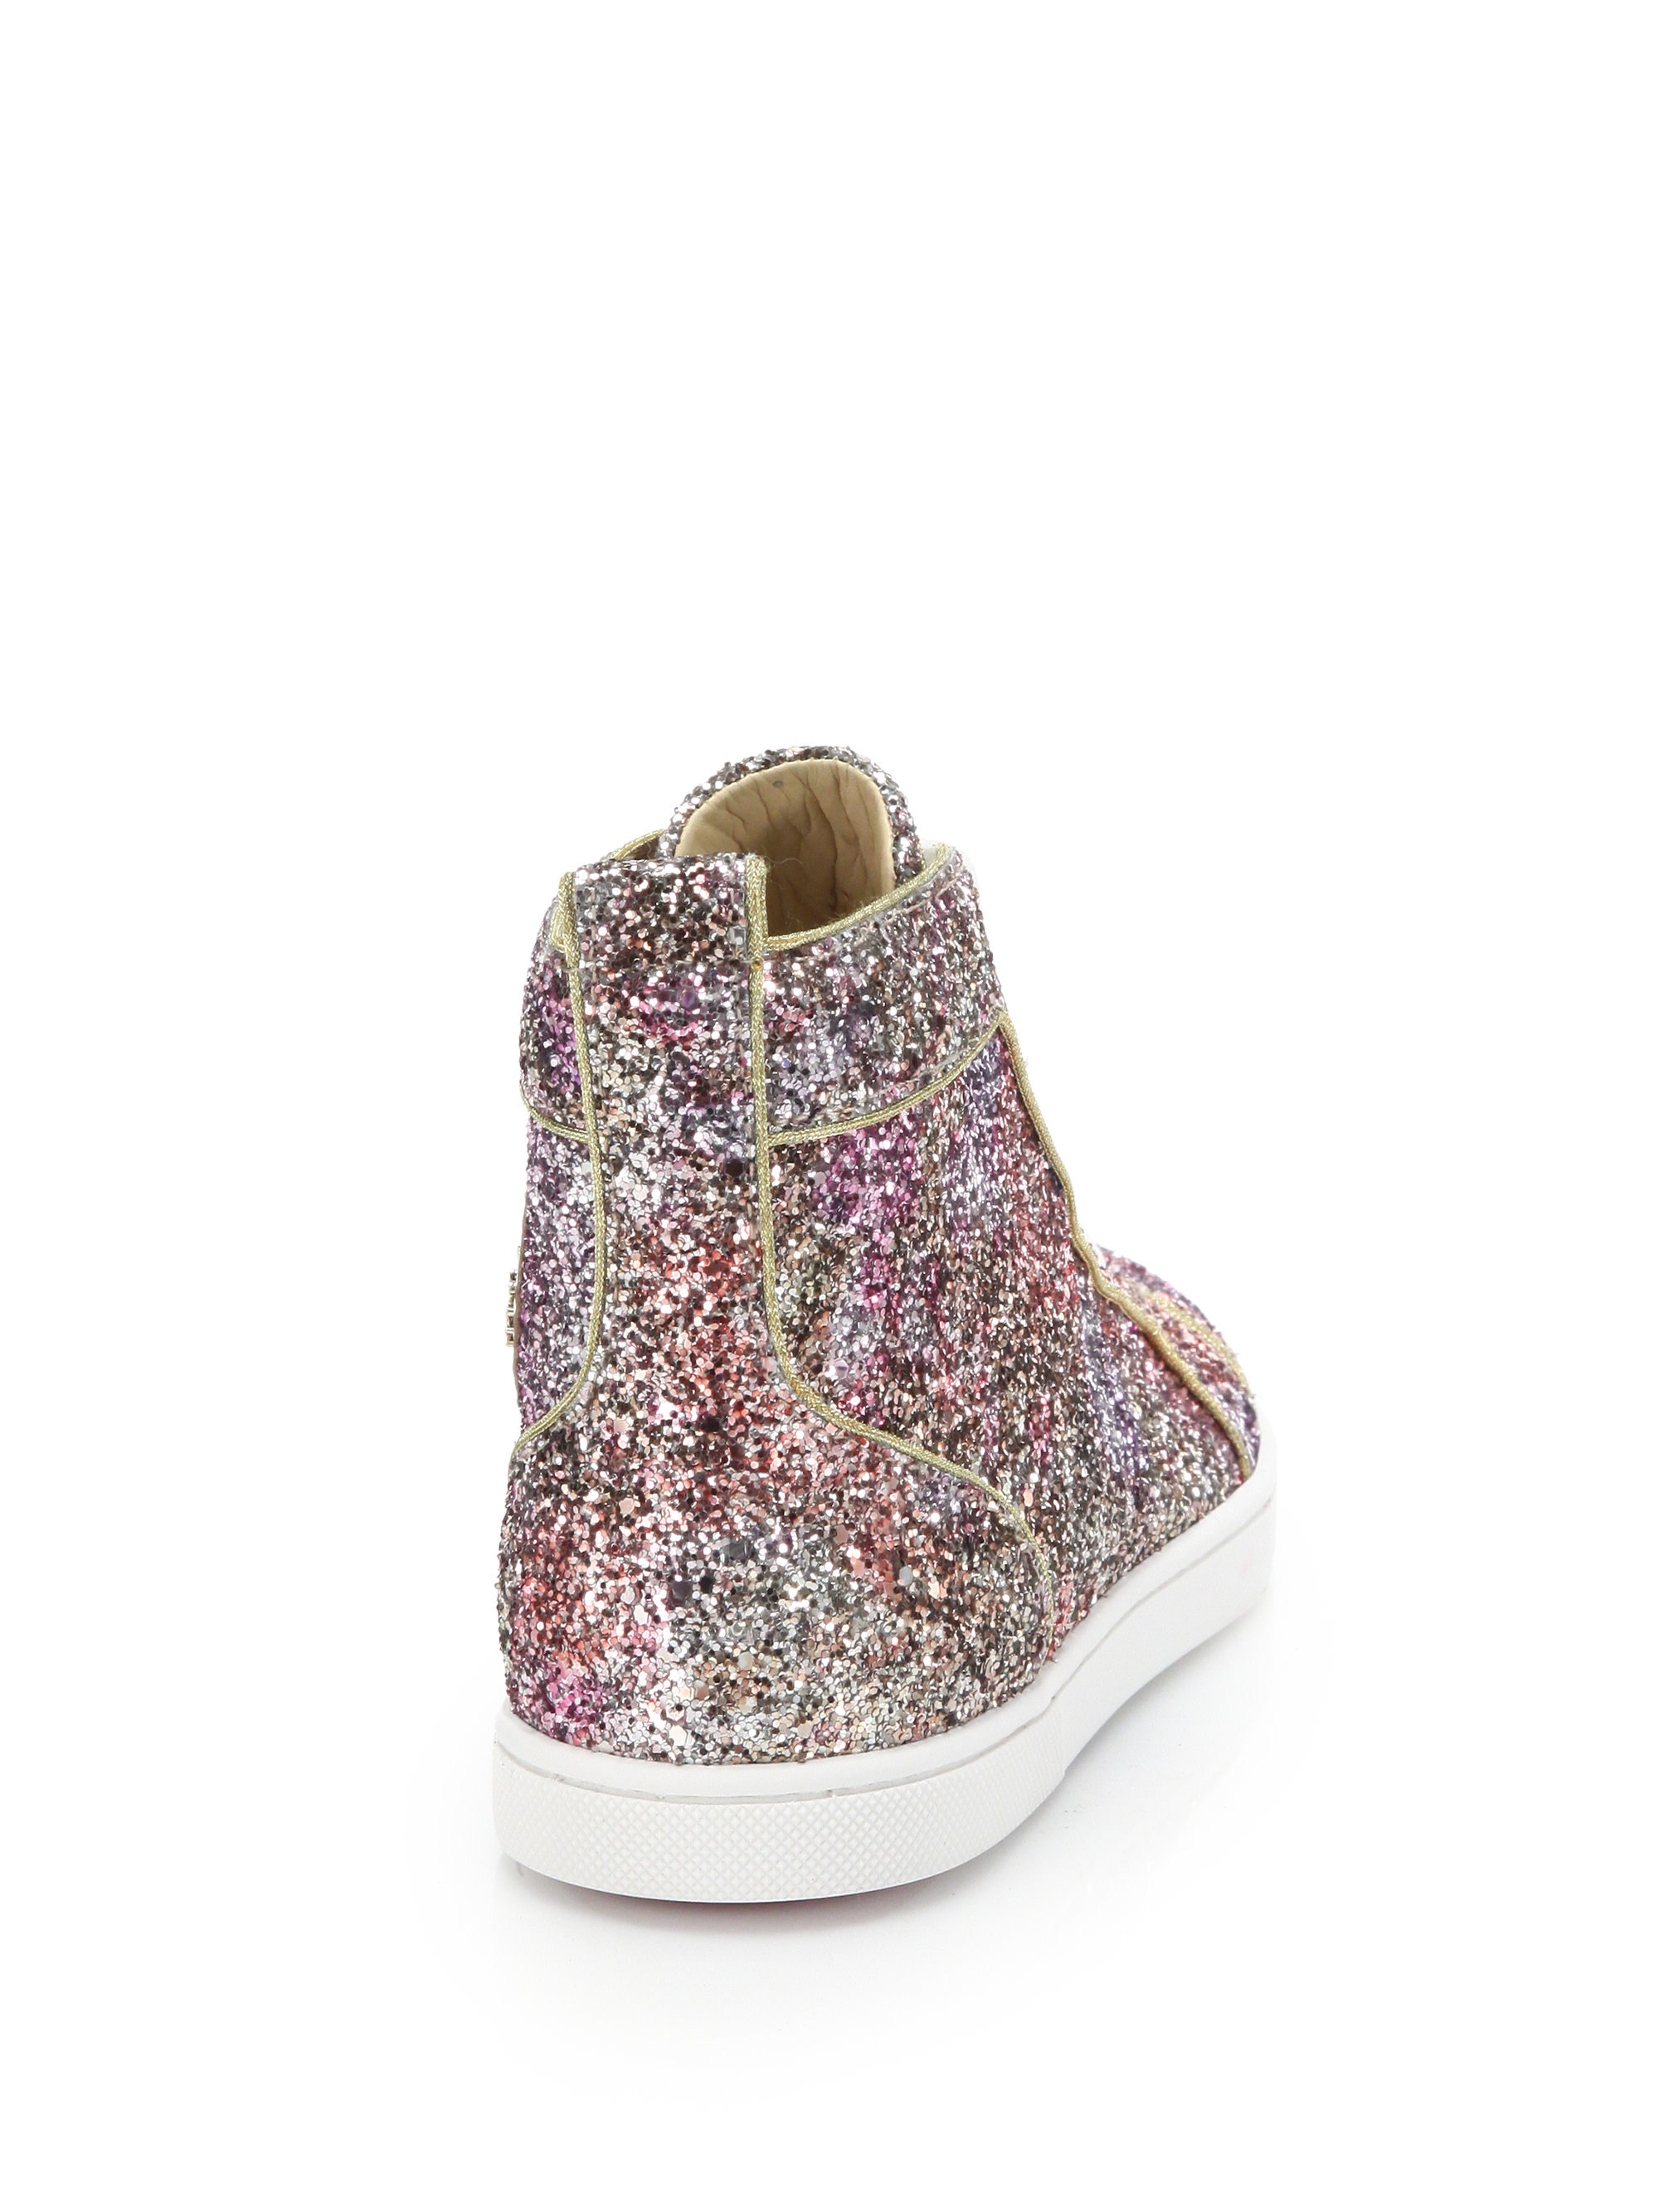 Lyst - Christian Louboutin Bip Bip Glitter High-top Sneakers in Pink cbb8f7e20a